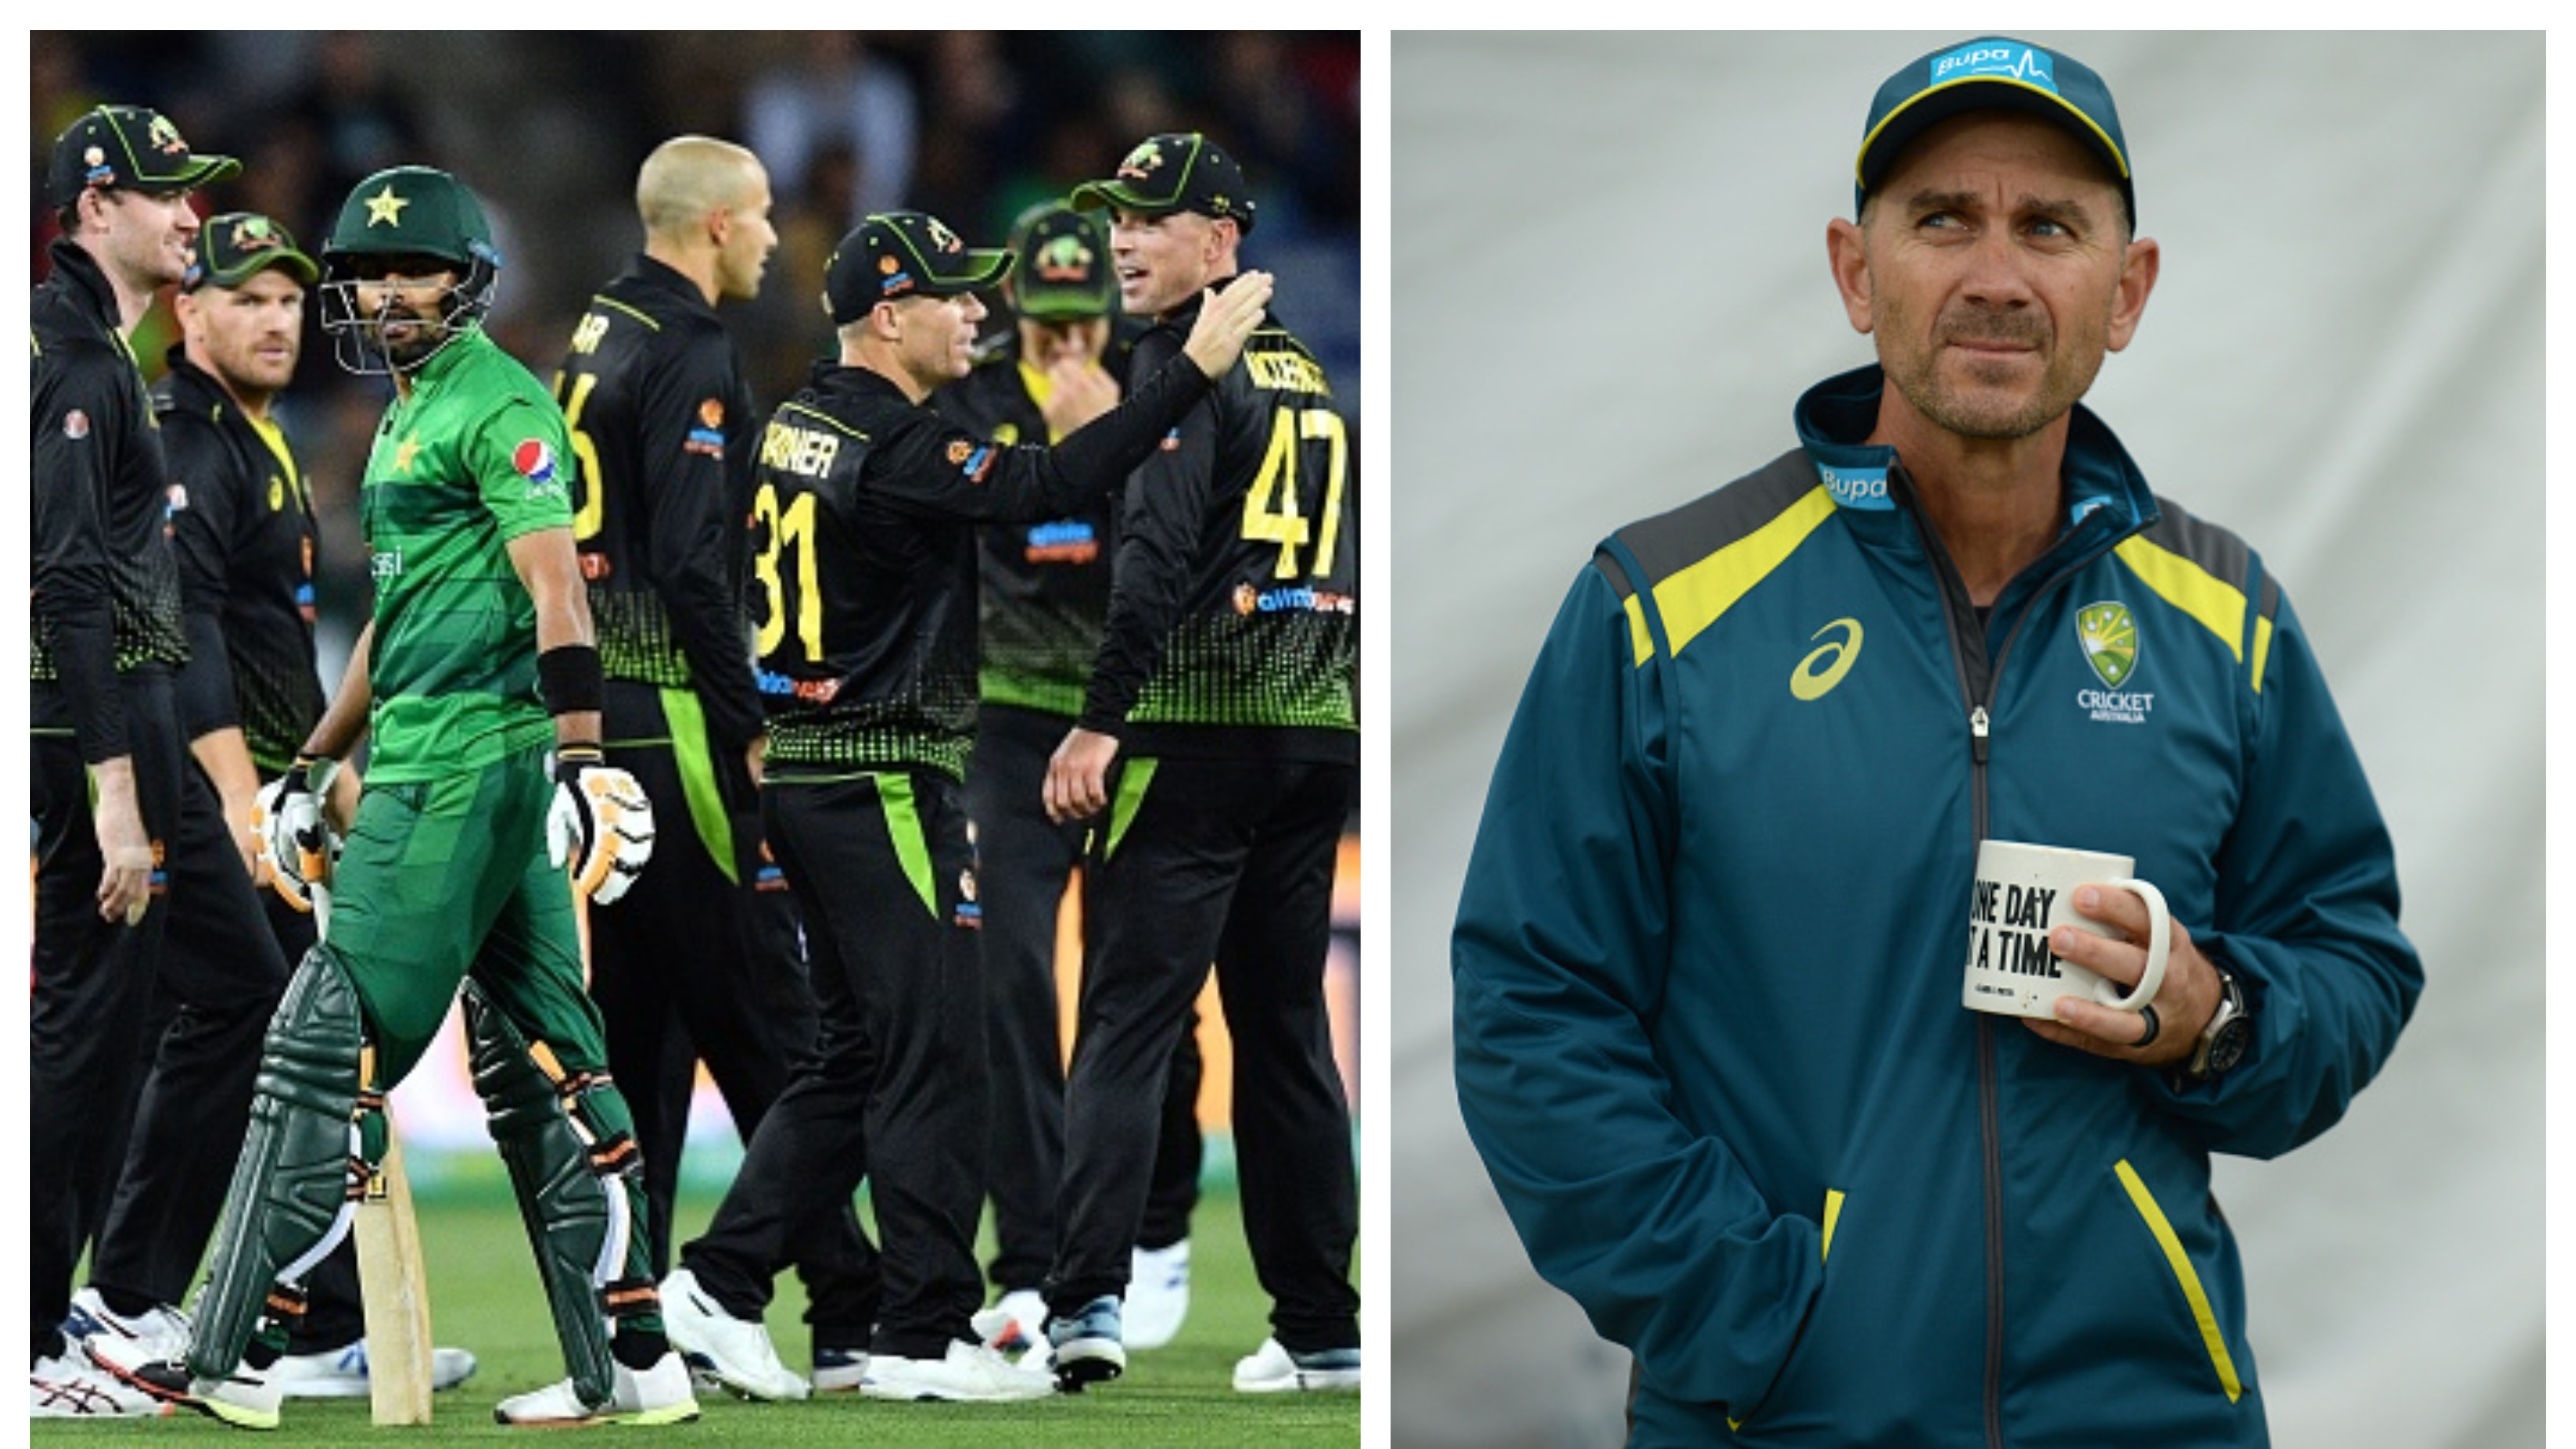 AUS v PAK 2019: Australia not to tweak much with T20I series on the line, says Justin Langer